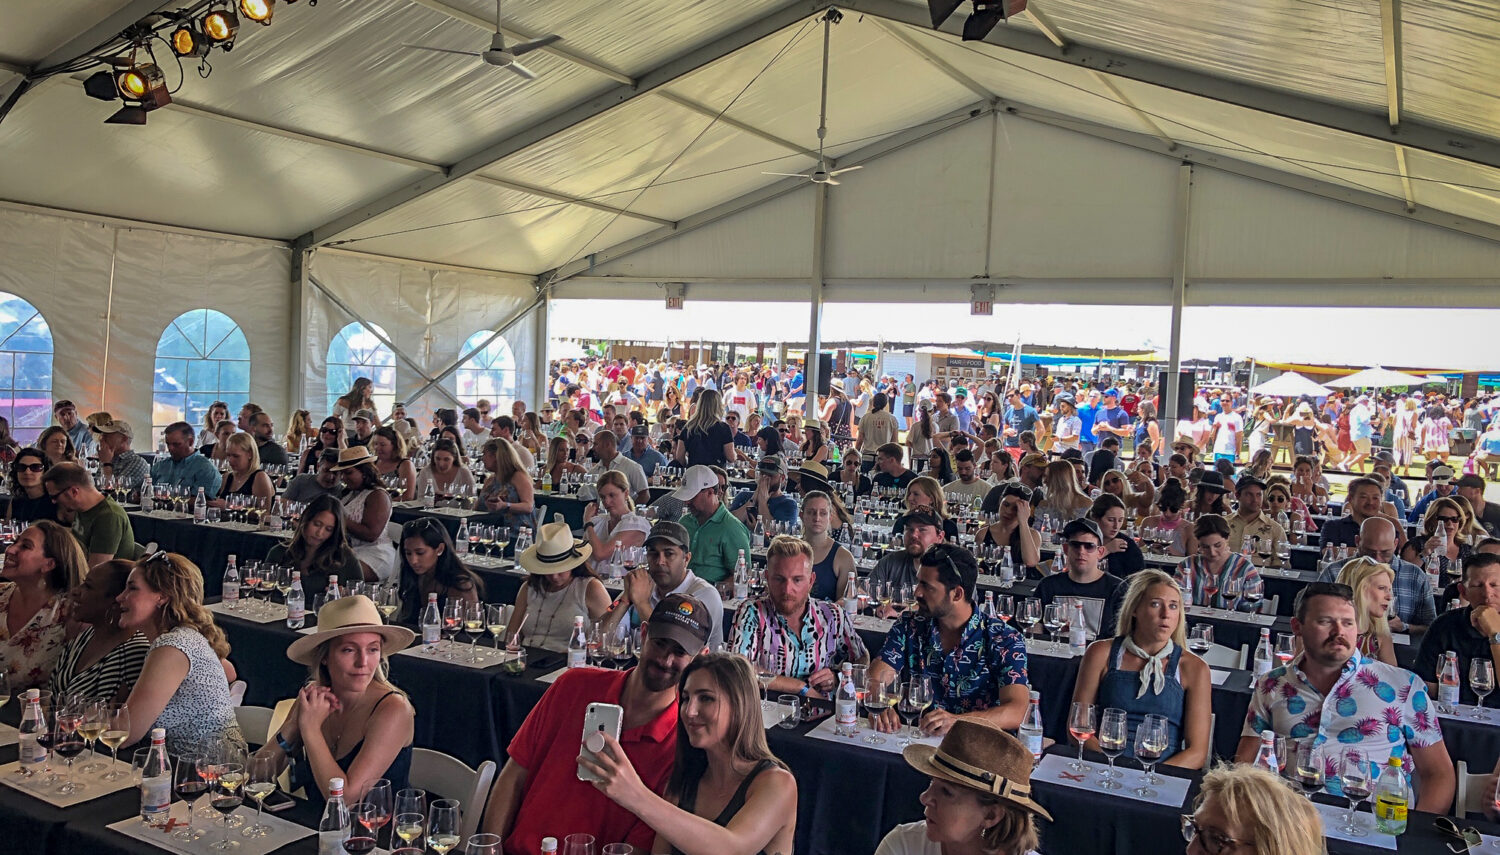 A large group of people sit at long tables facing the camera with glasses of wine in front of each person. A large white tent covers them.